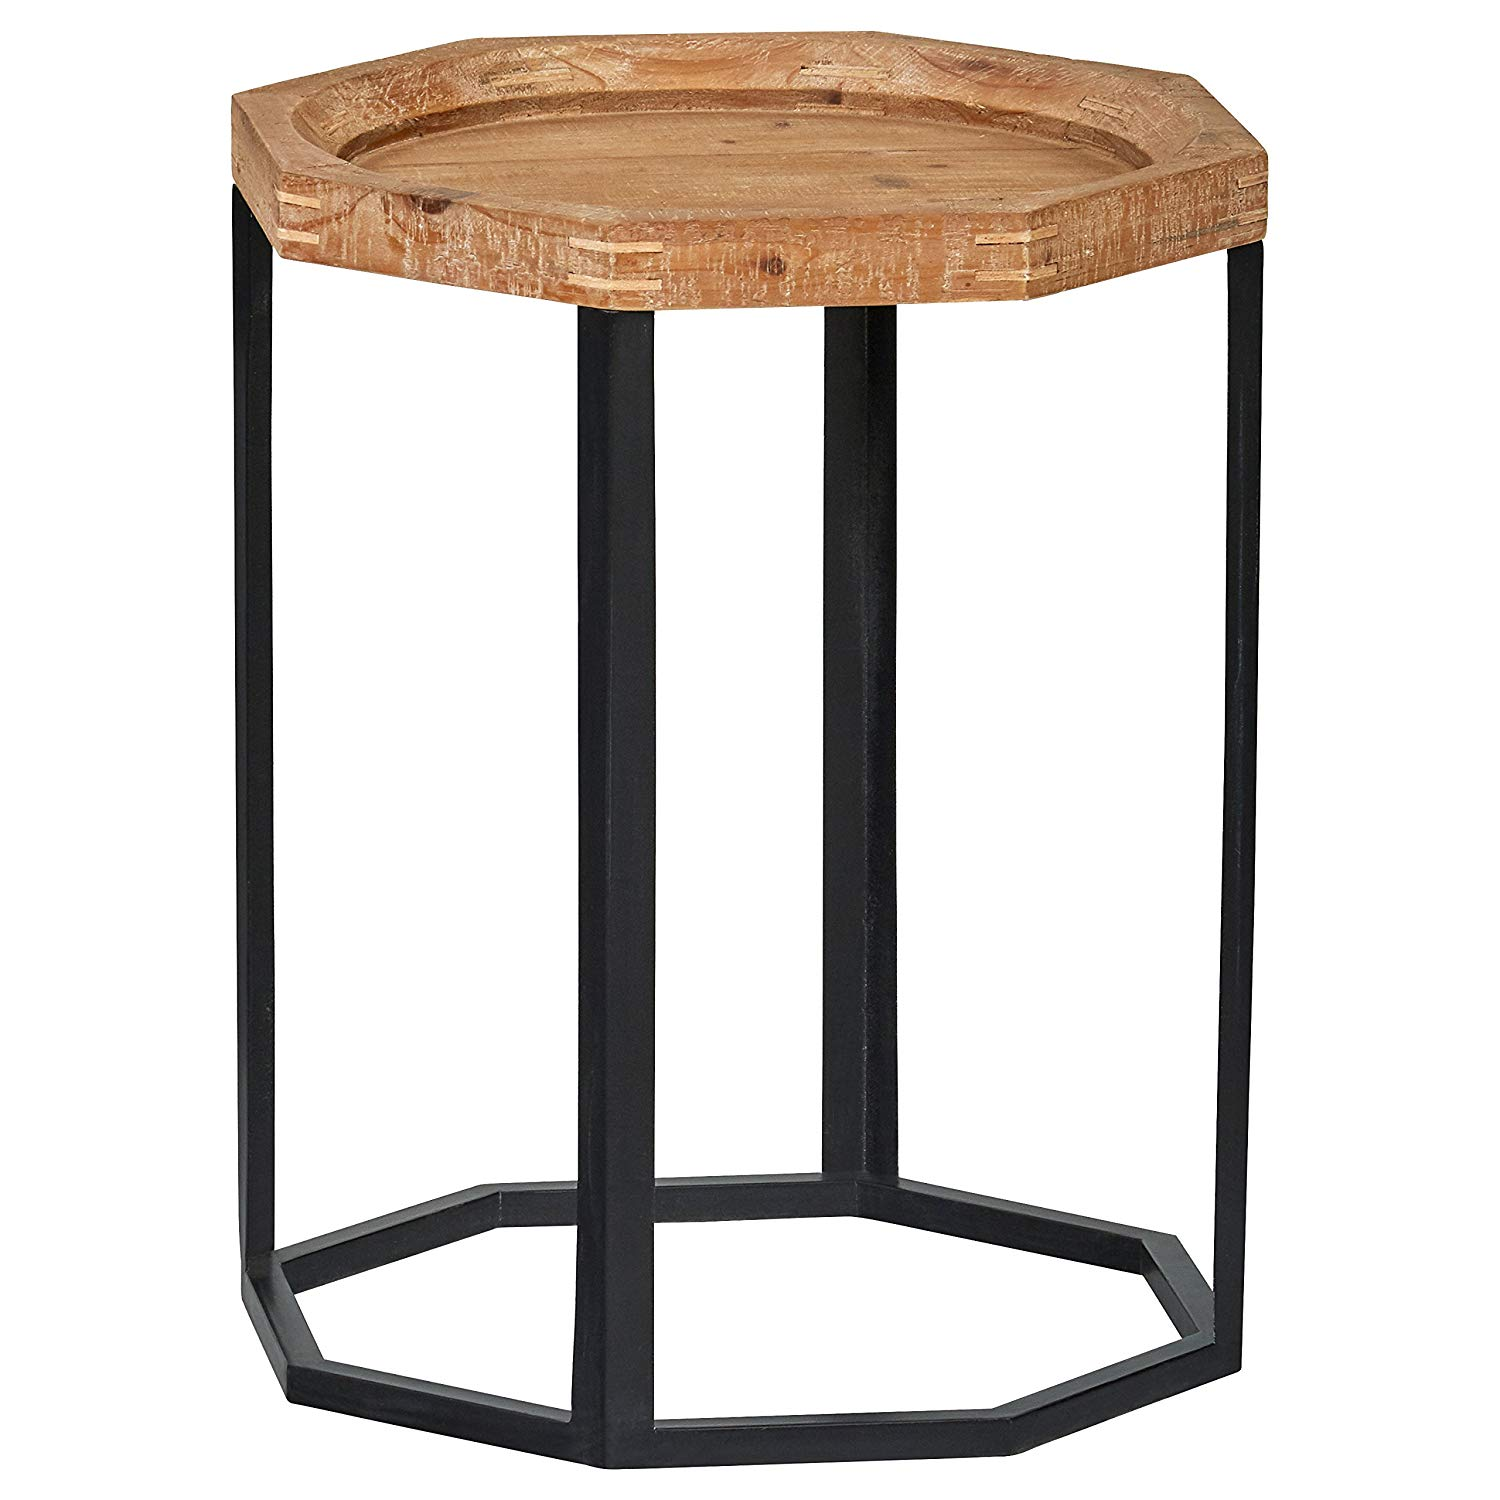 stone beam arie rustic octagonal end table wood tables natural kitchen dining oak and black gloss furniture with accent wooden coffee storage drawers replacement glass top for